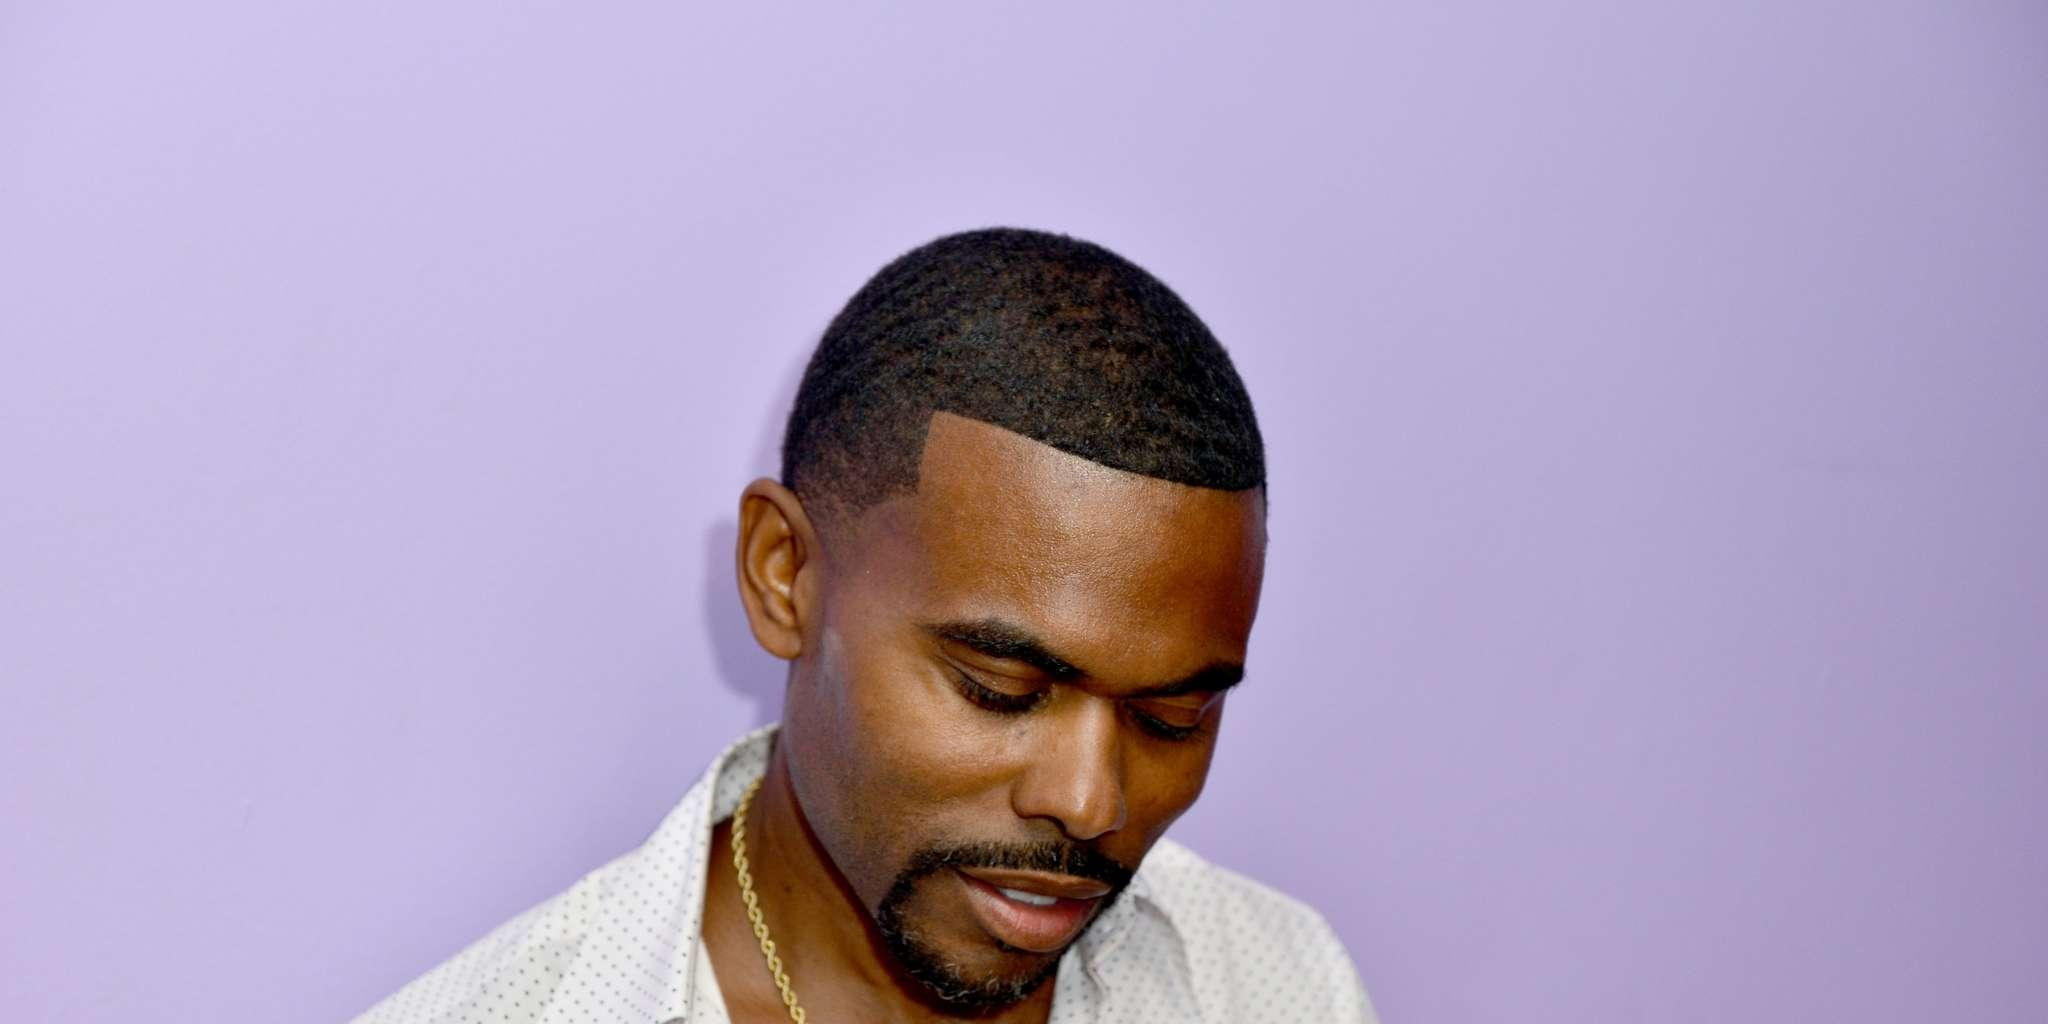 Lil Duval Drops A Message About Women - Read It Here